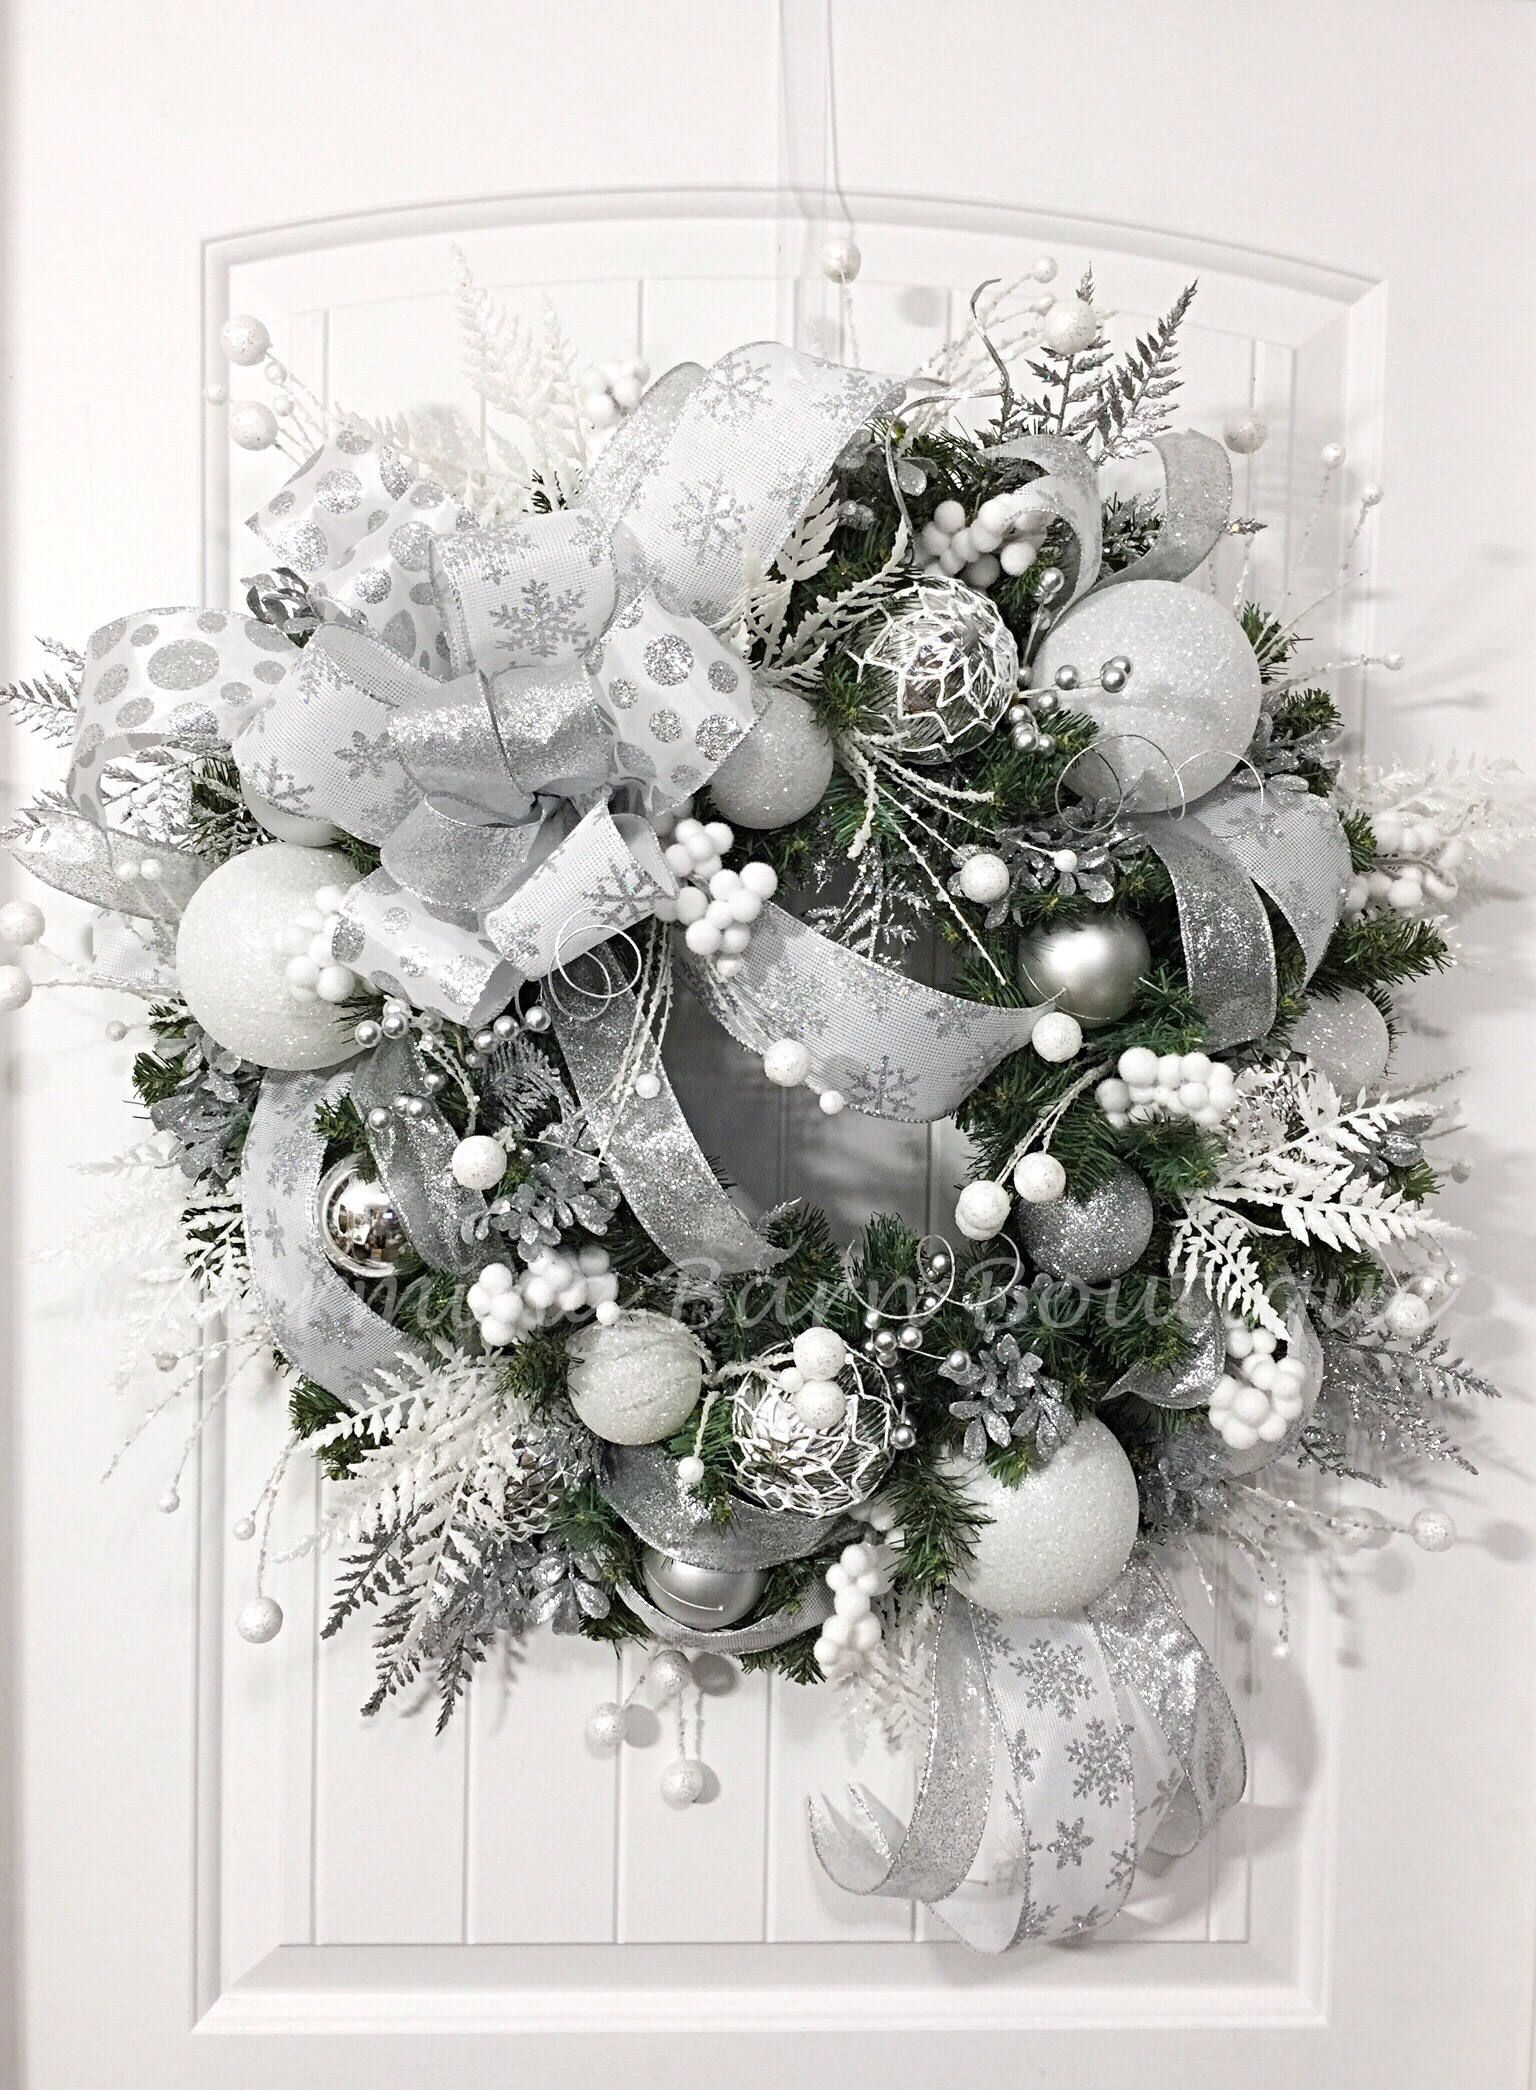 Christmas Wreath Winter Wreath Holiday Wreath Evergreen Wreath White And Silver Wrea Winter Door Decorations Christmas Wreaths Silver Christmas Decorations